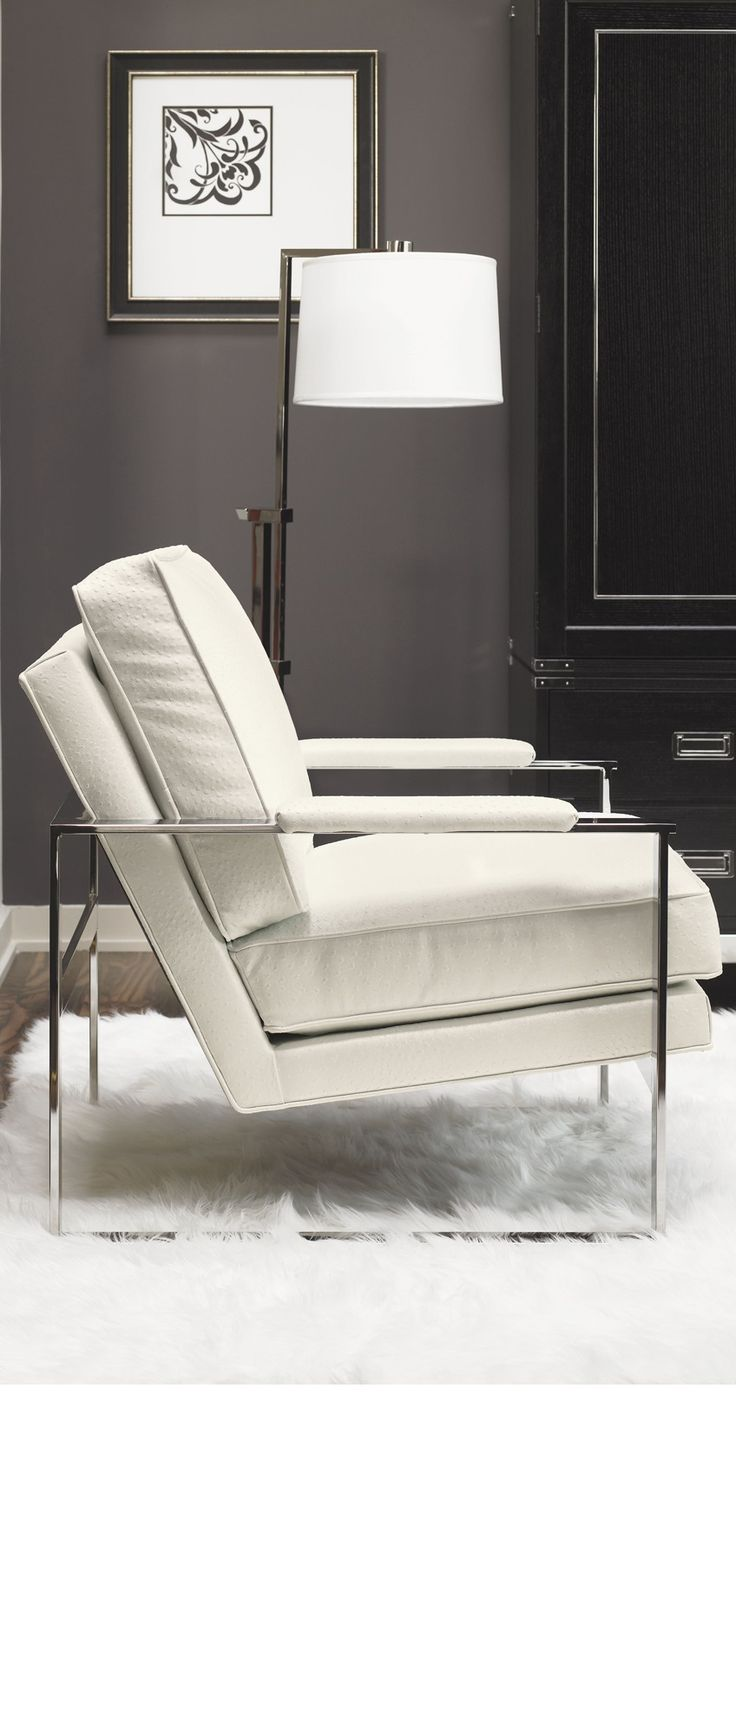 bedroom lounge chair.  lounge chairs chair ideas by InStyle Decor com Hollywood Best 25 Bedroom on Pinterest Chaise bedroom